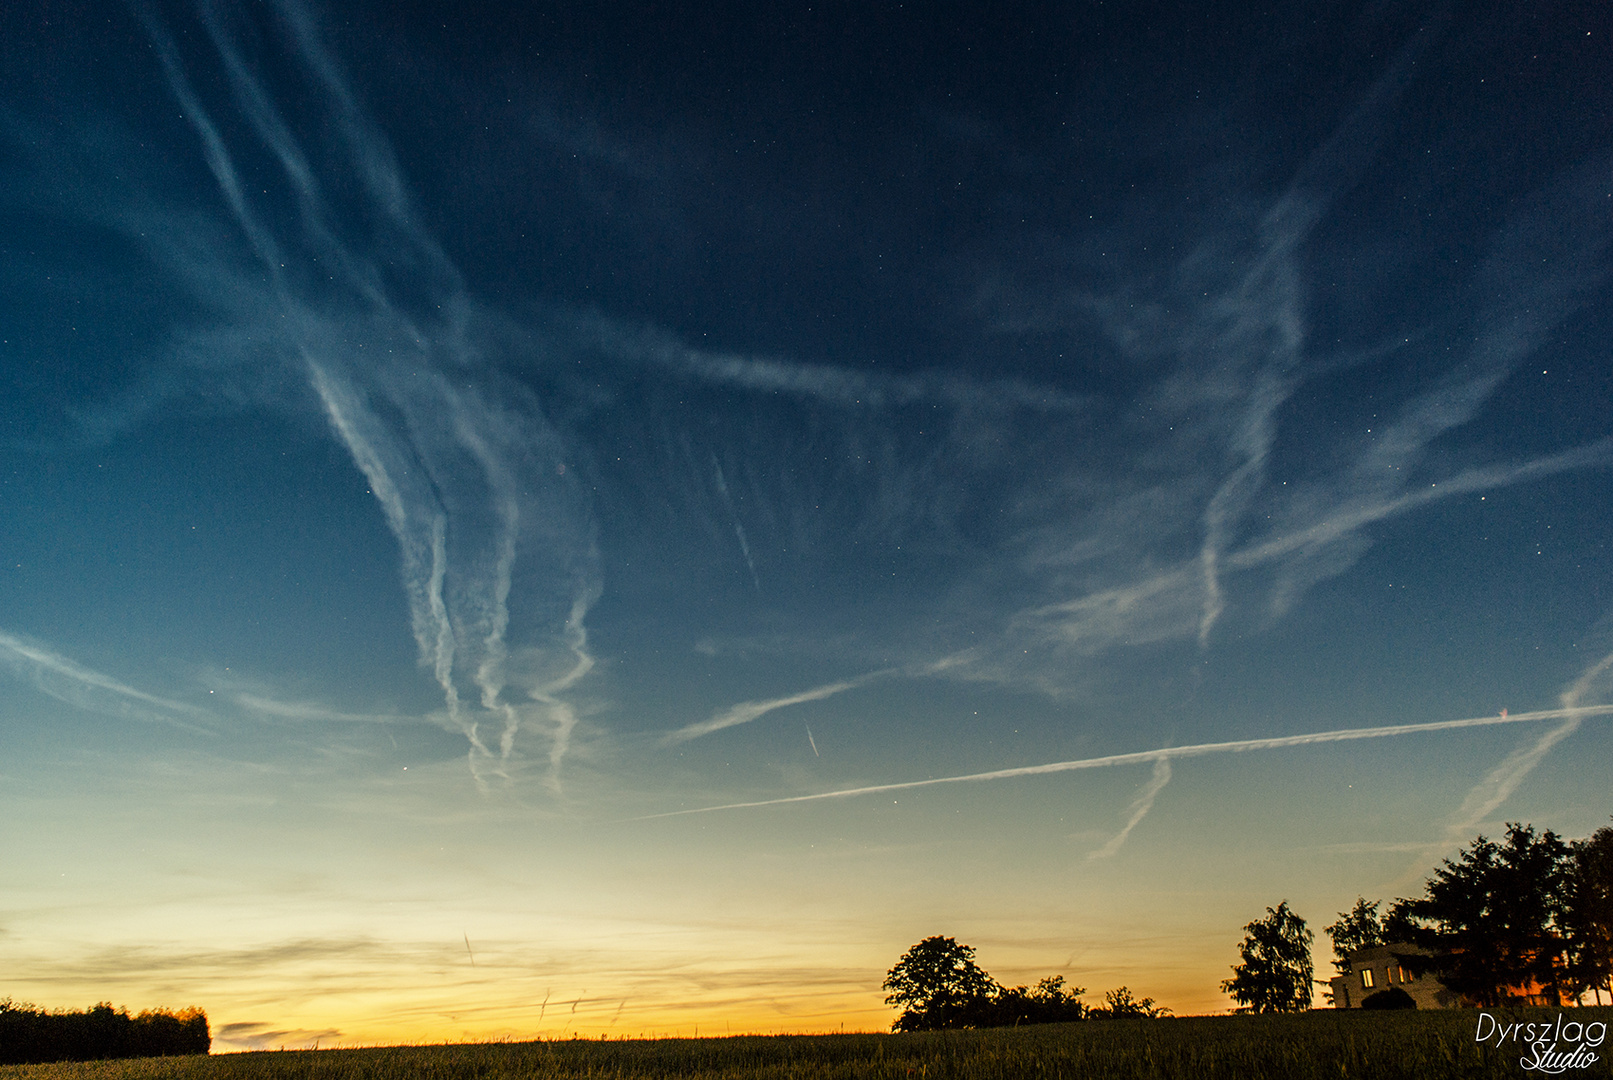 traces of planes